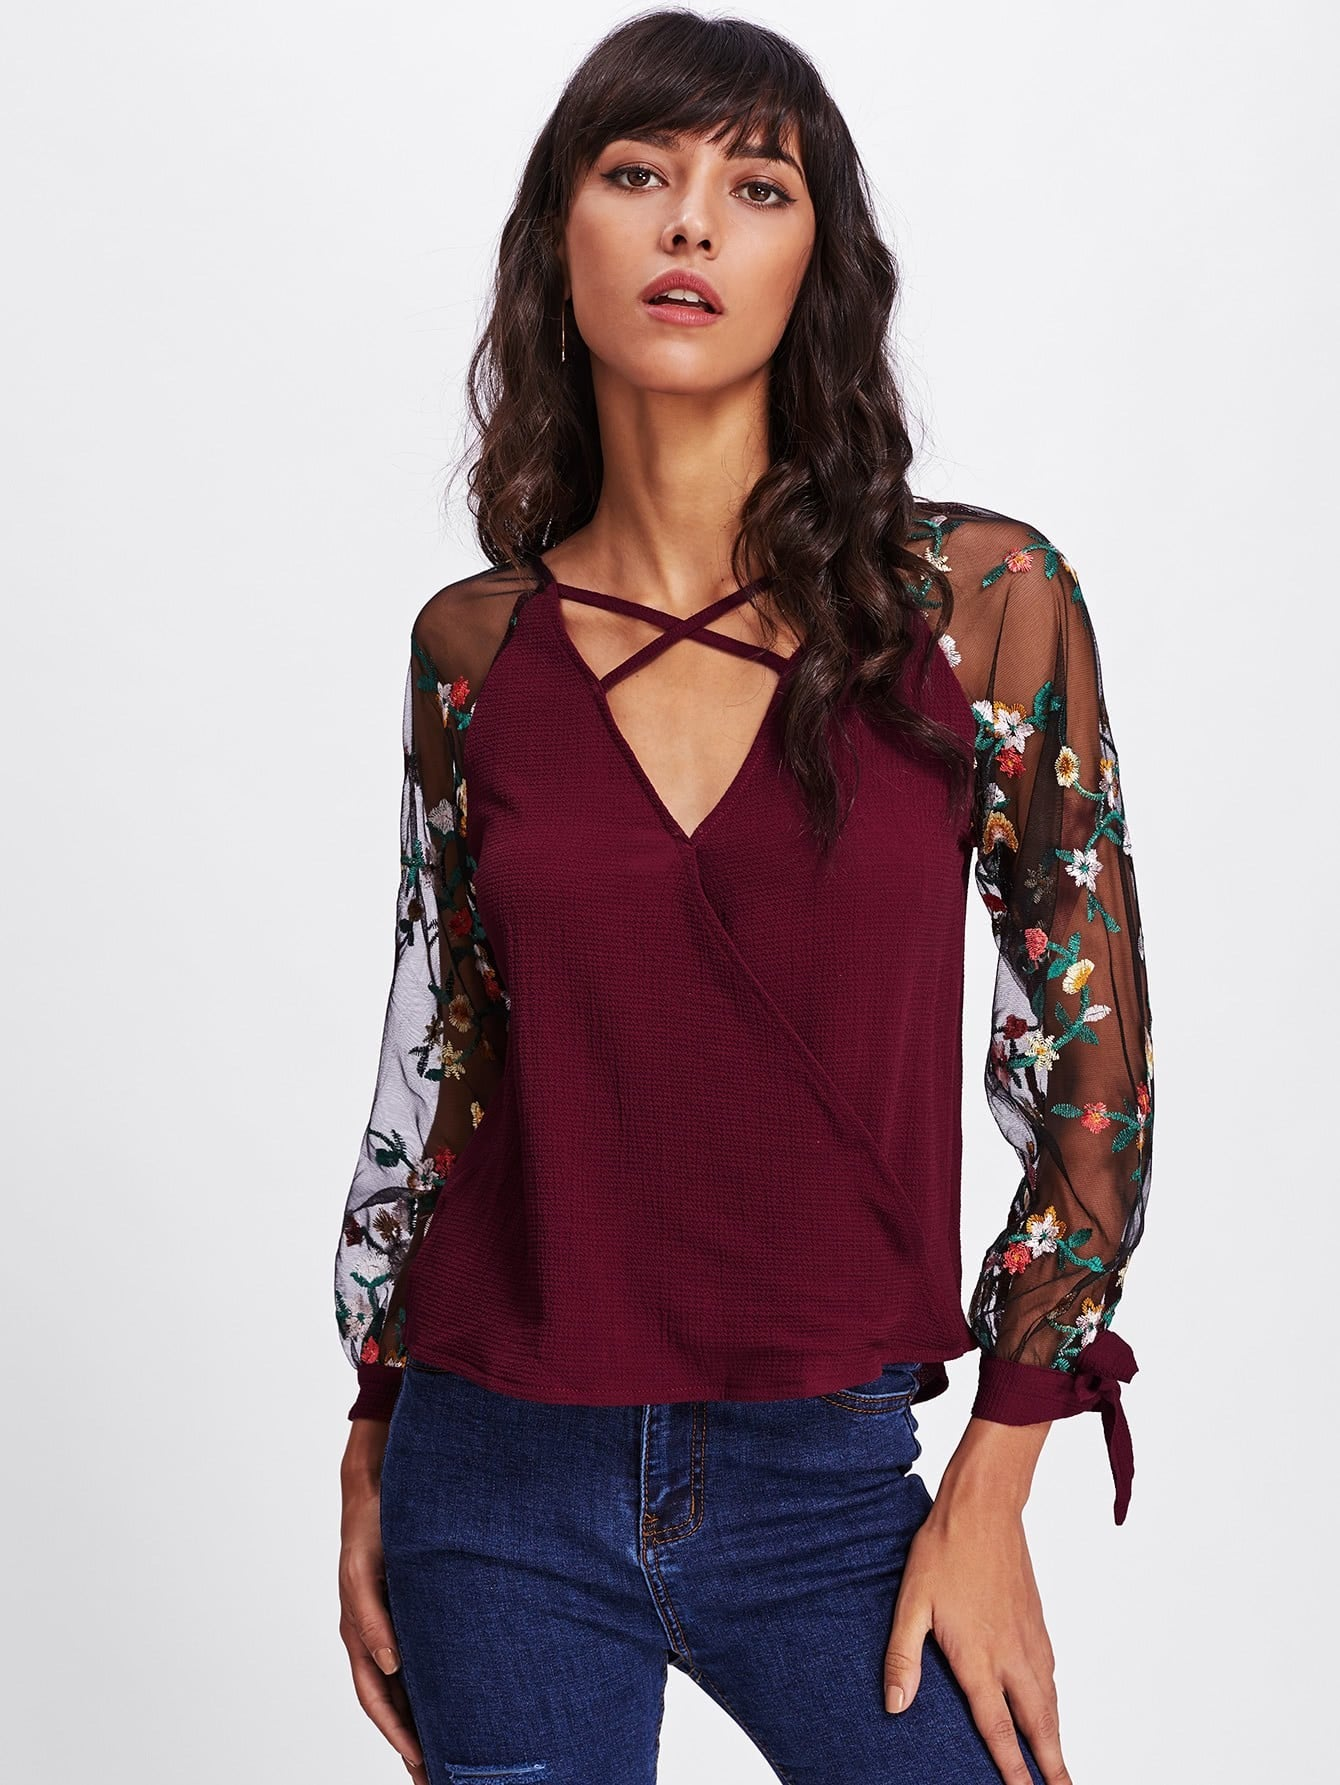 Floral Embroidered Lace Panel Criss Cross Surplice Blouse metallic panel criss cross sliders